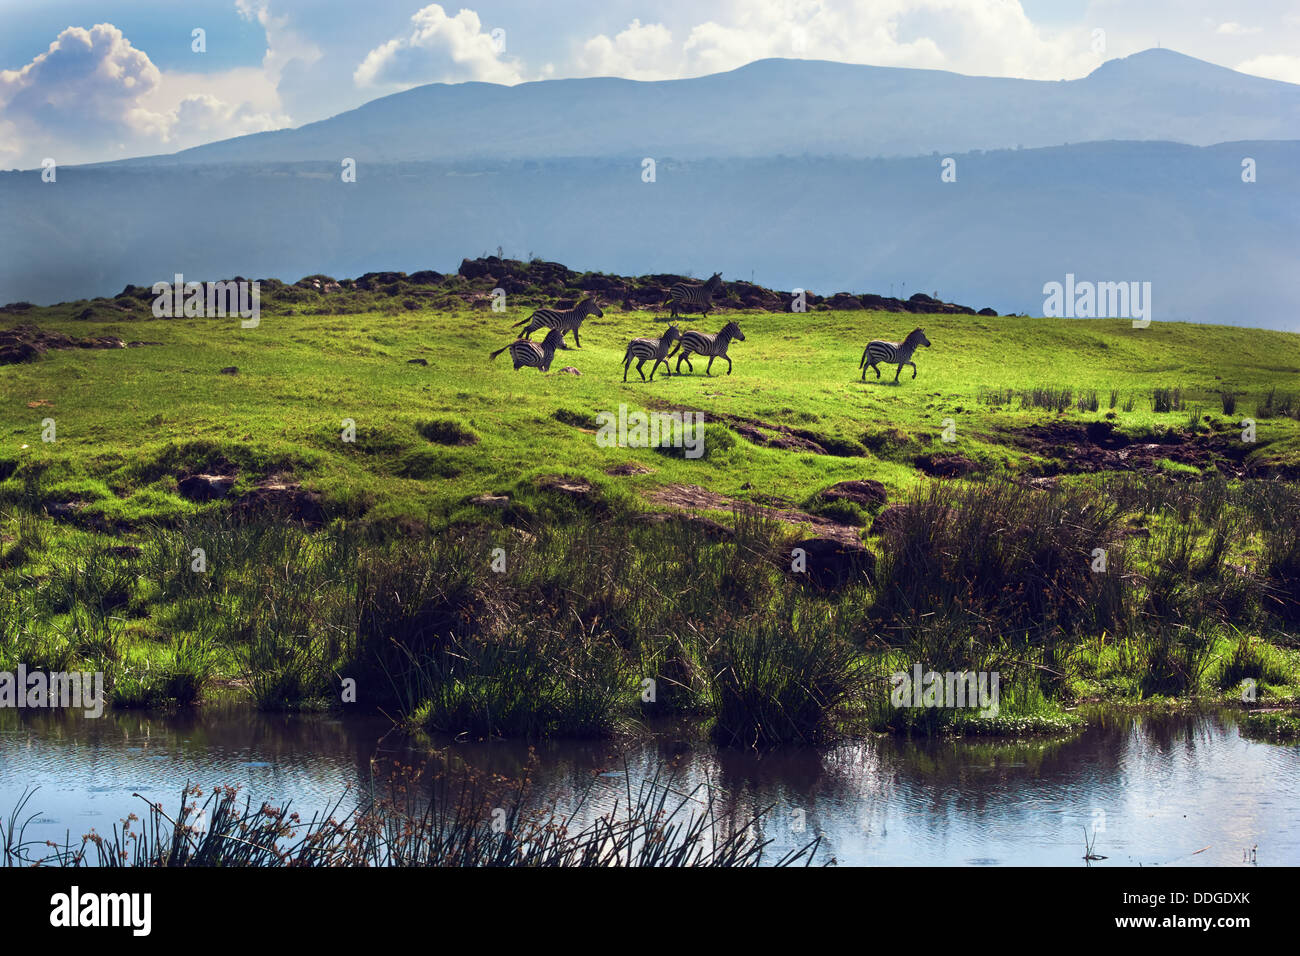 Zebras on green grassy hill in the Ngorongoro Conservation Area crater, Tanzania, Africa - Stock Image